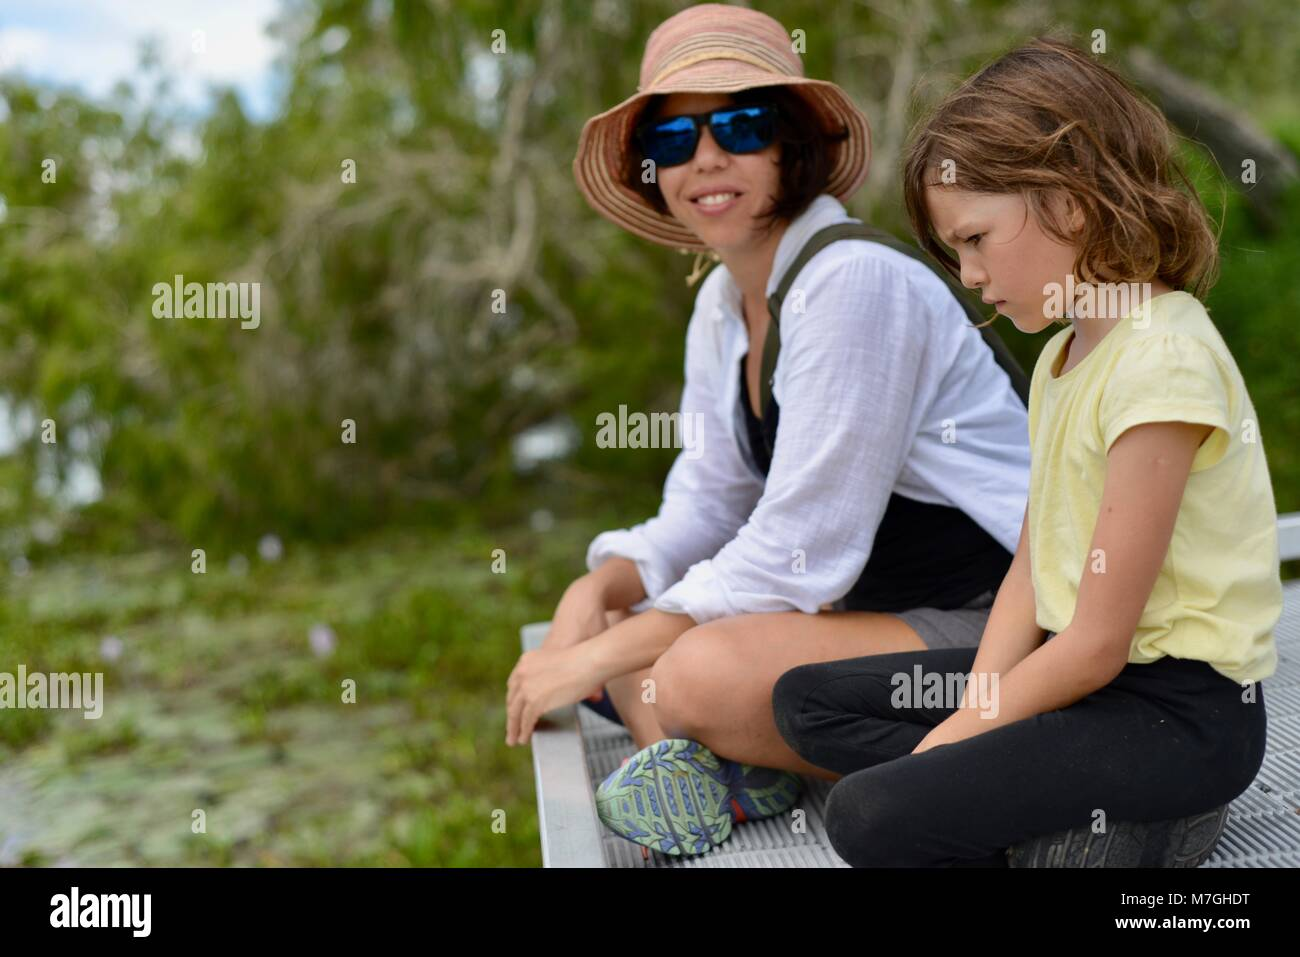 Mother and daughter sit on pier overlooking water and forest while discussing issues, Apex Park, Riverway Drive, - Stock Image